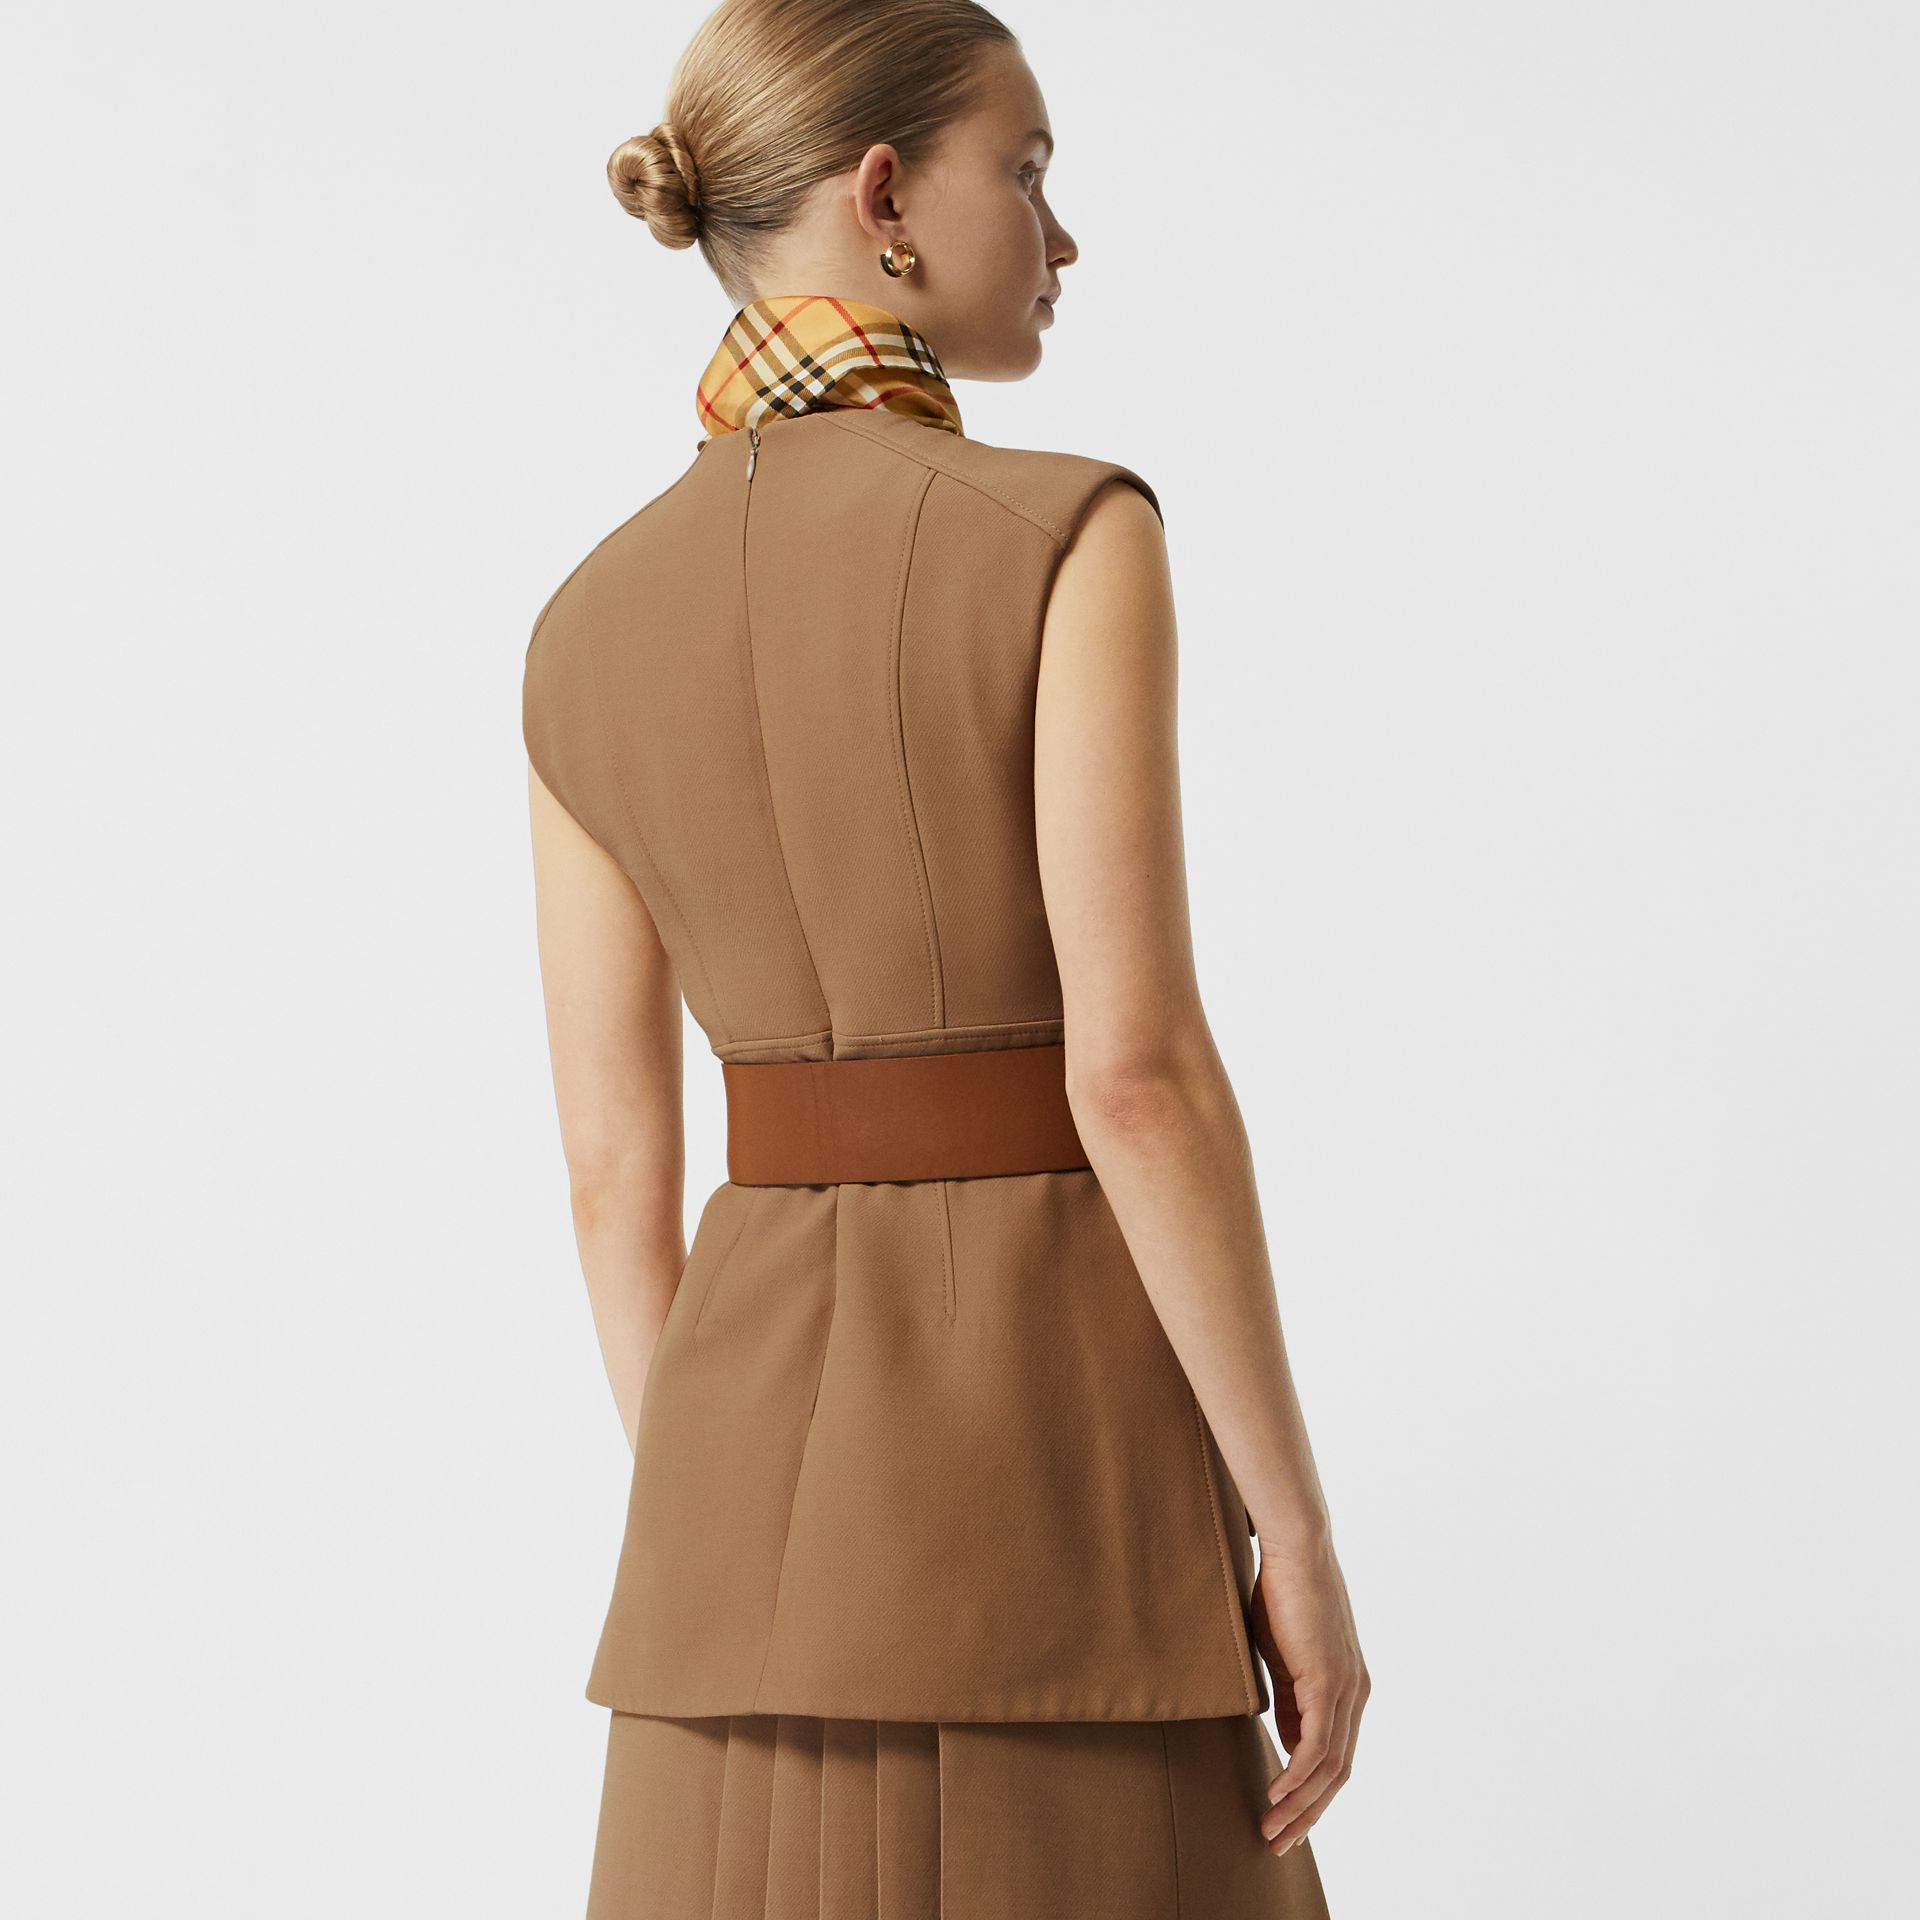 Keyhole Detail Sleeveless Wool Silk Top in Camel - Women | Burberry United Kingdom - gallery image 2